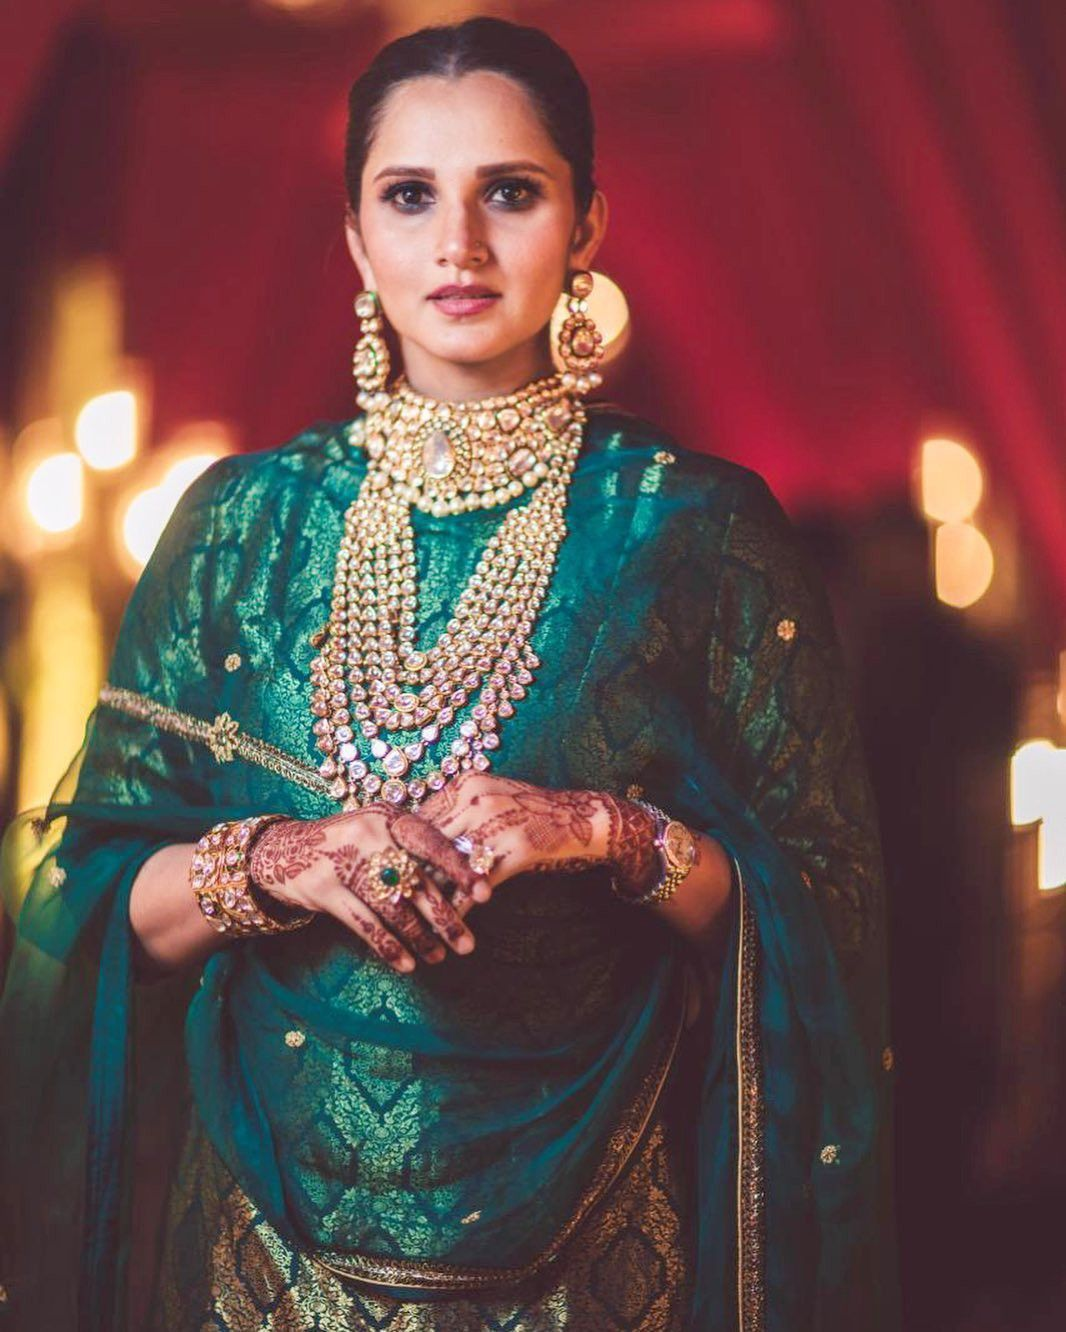 Tennis star SaniaMirza's sister AnamMirza tied the knot